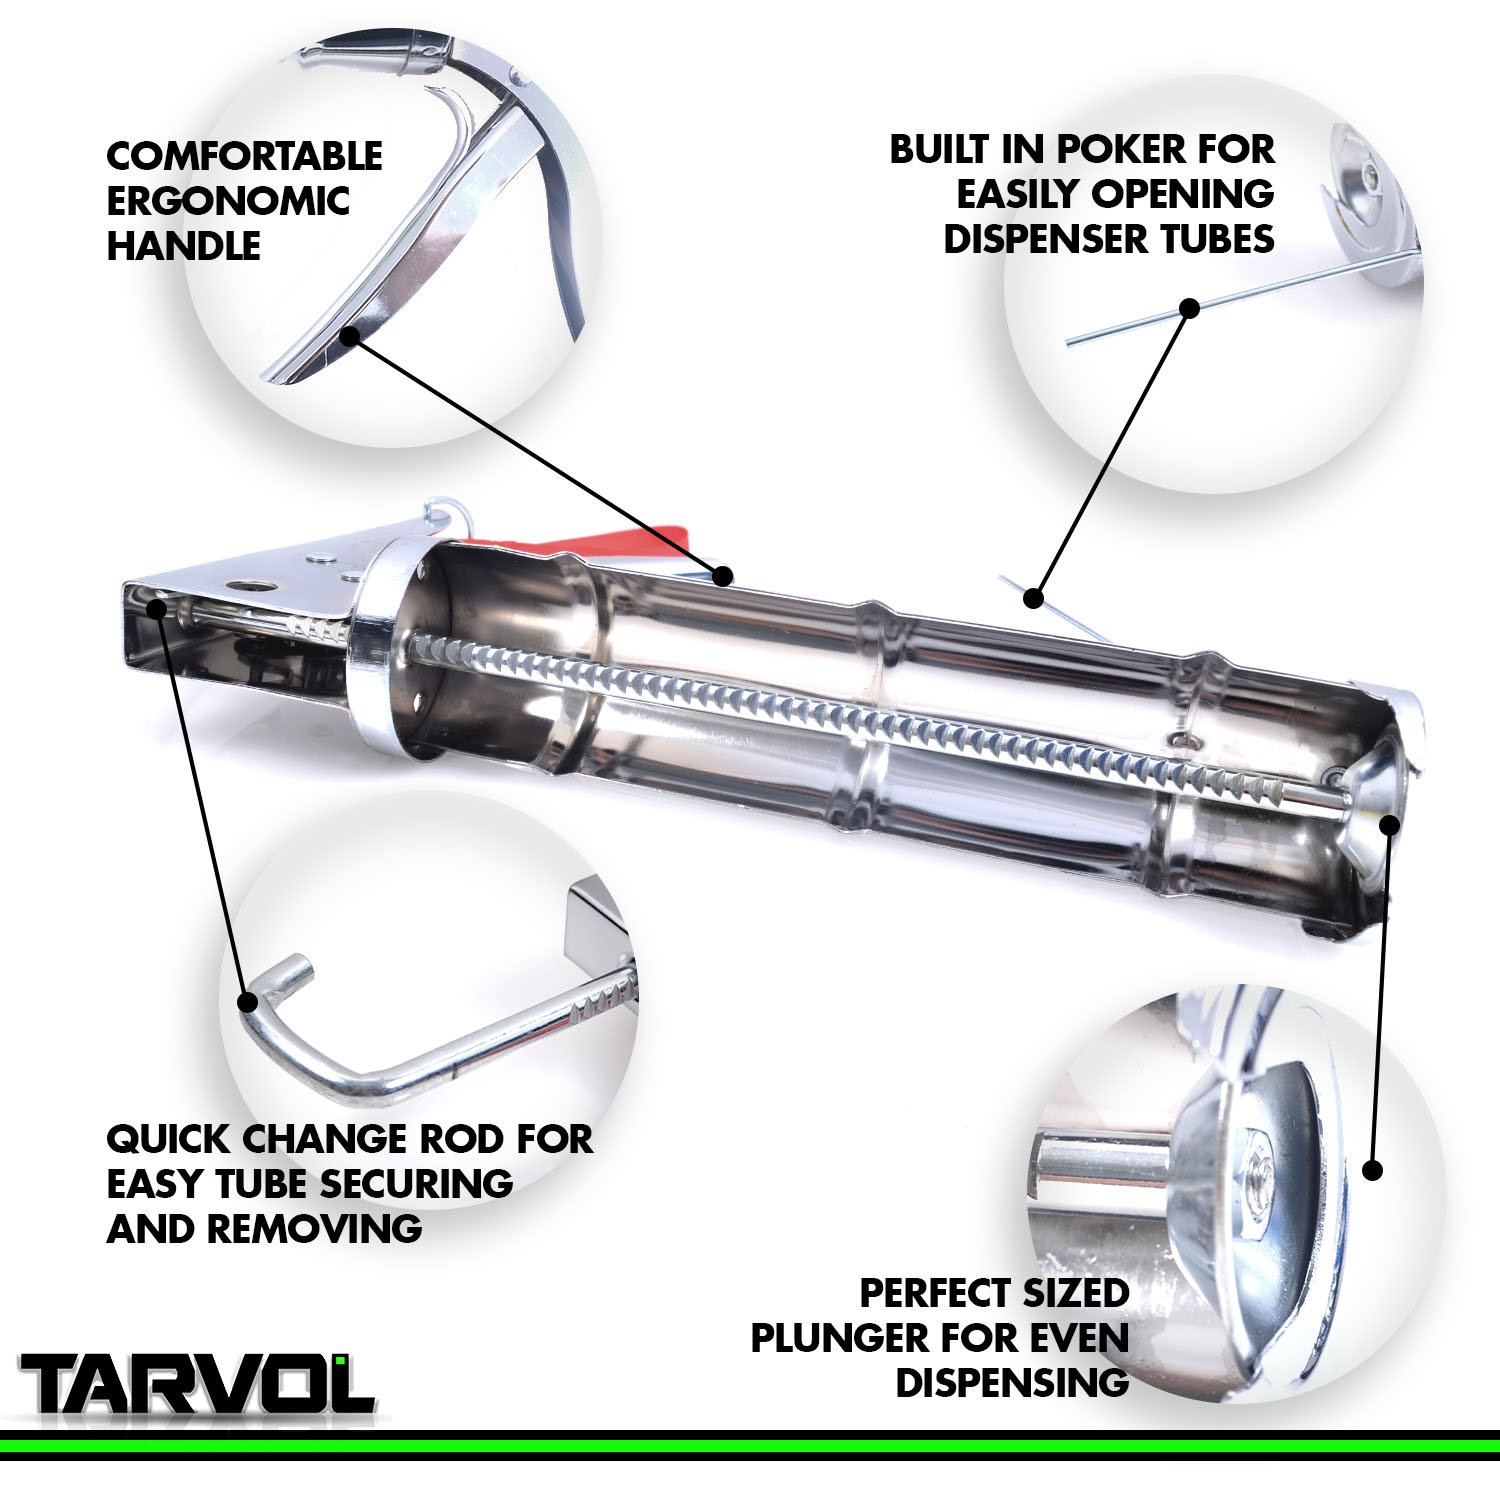 3 in 1 Caulking Gun (HEAVY DUTY CHROME PLATED) Fits Standard Size 10oz Caulk - Refillable 3 in 1 Design Includes Built in Cutter and Puncher Tool - Perfect for Industrial & Home Use! by Tarvol (Image #3)